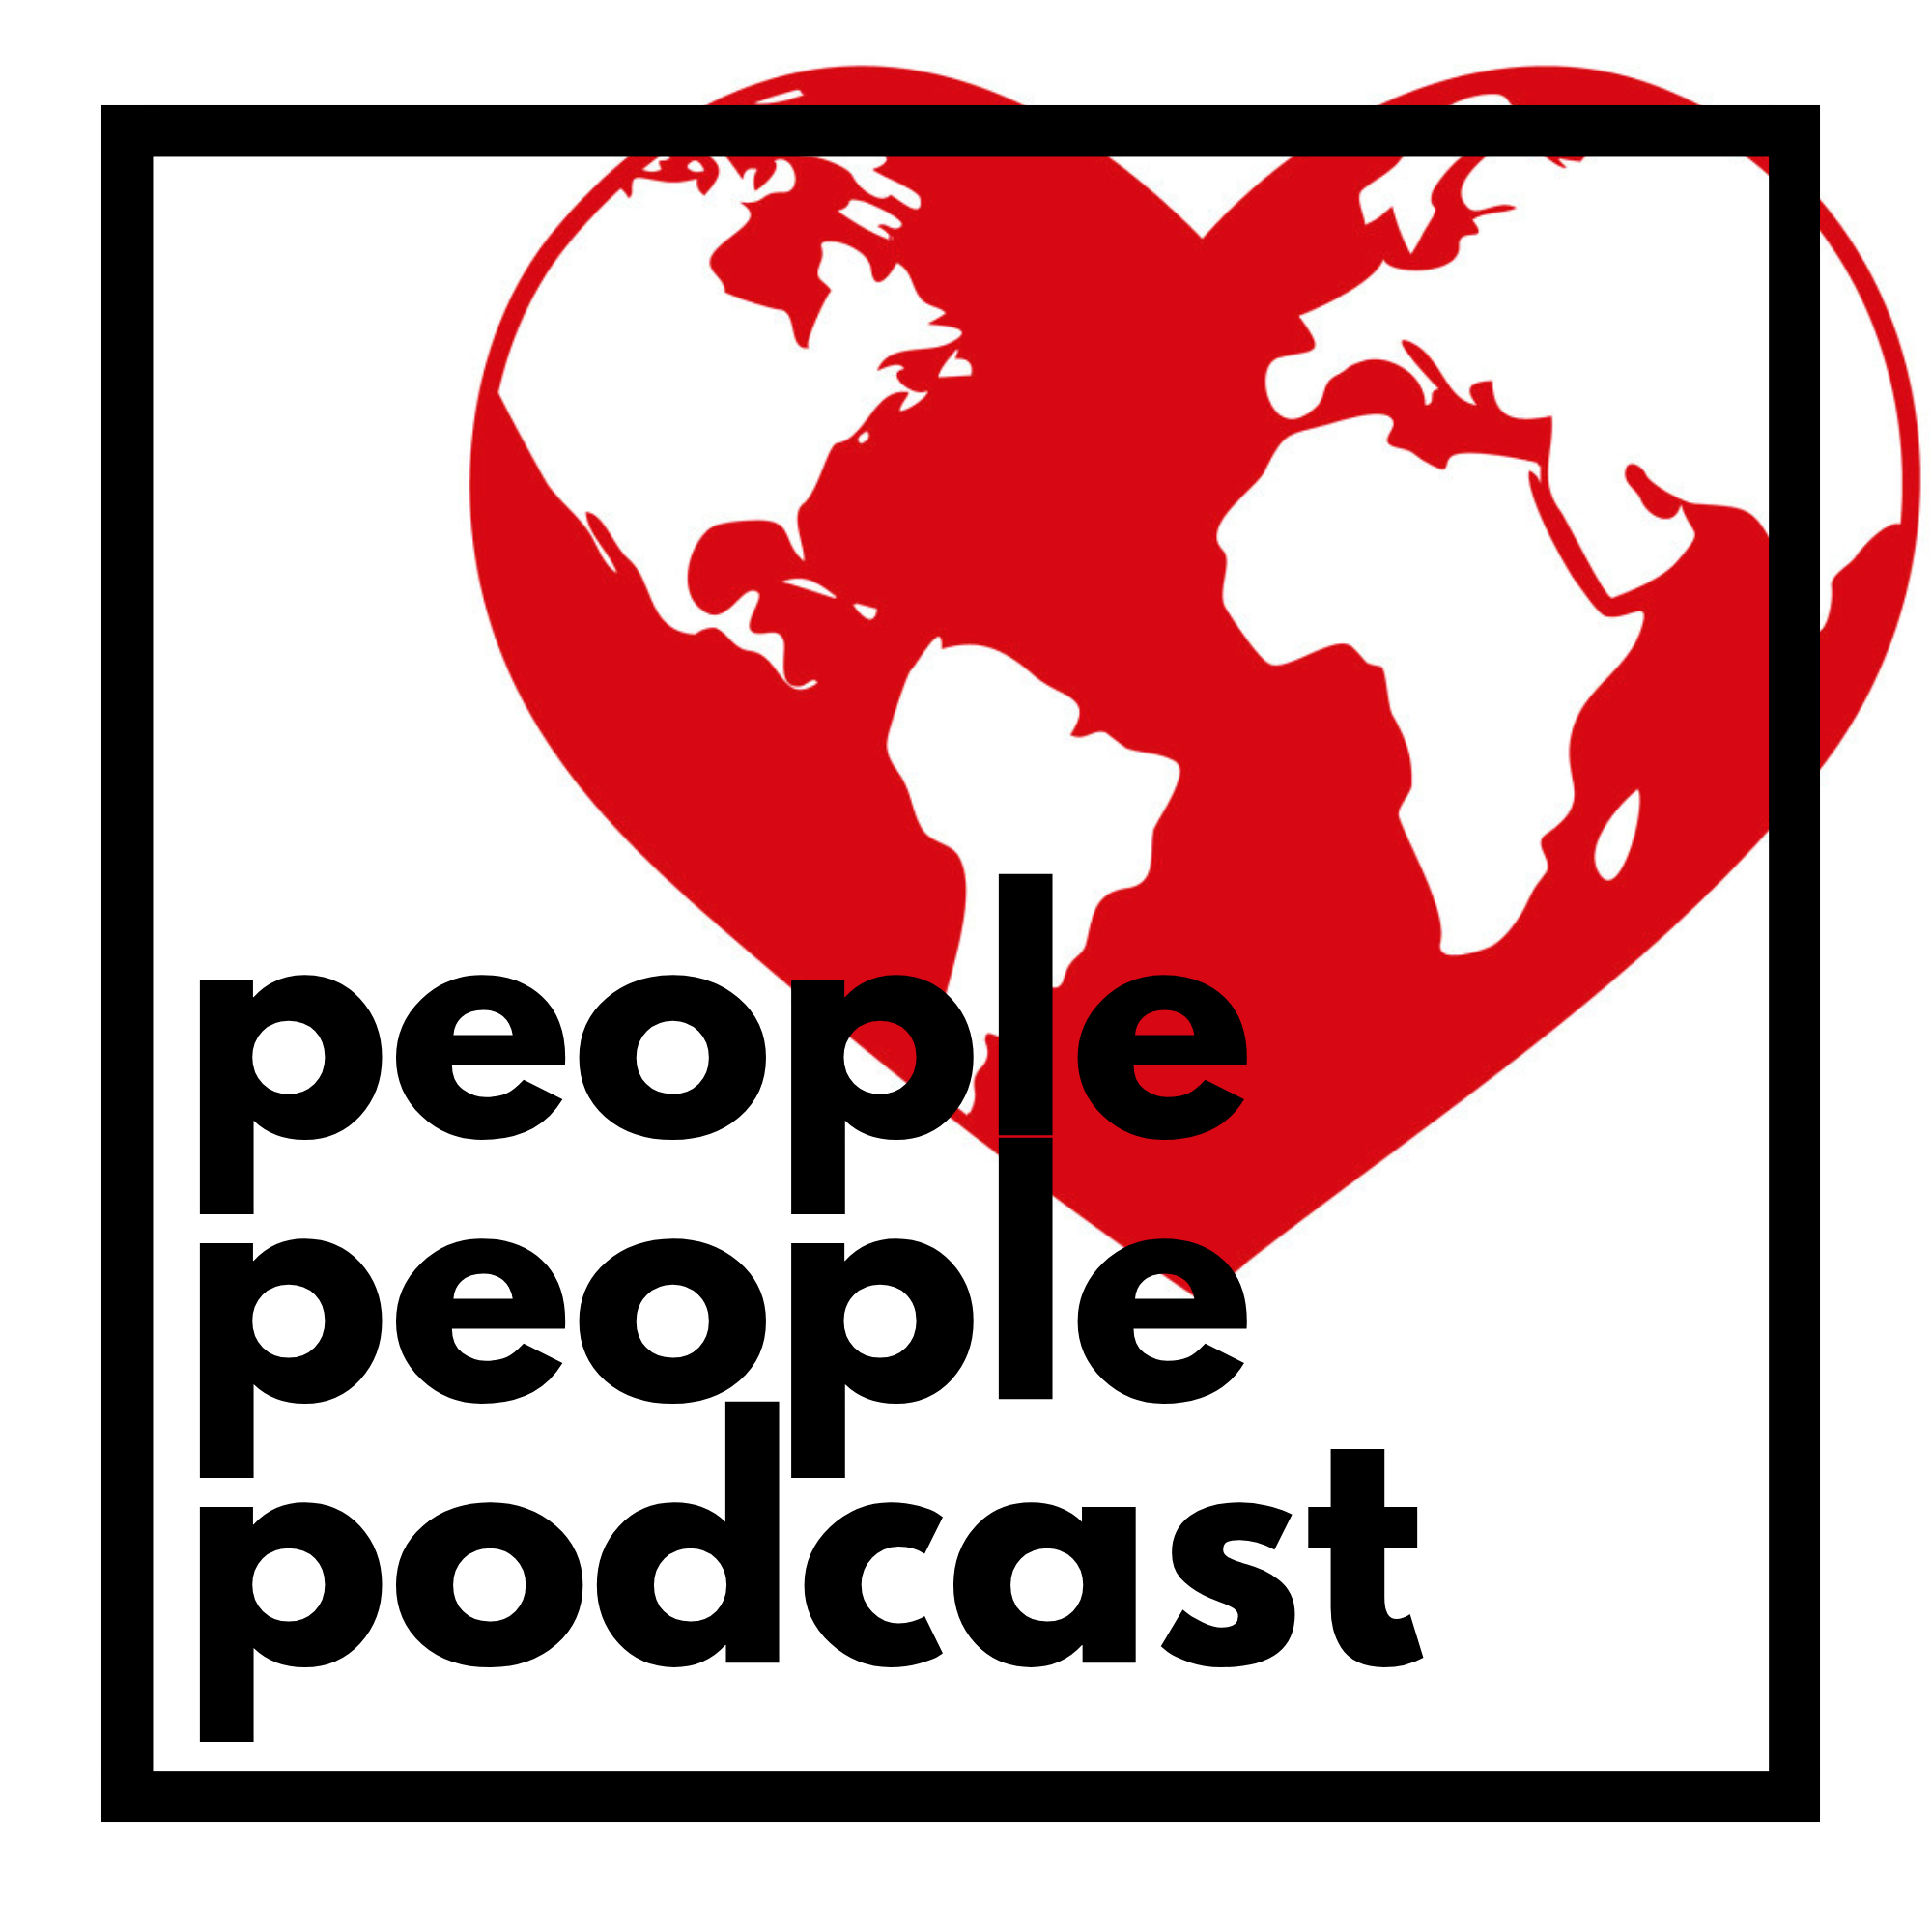 people people podcast (24).png